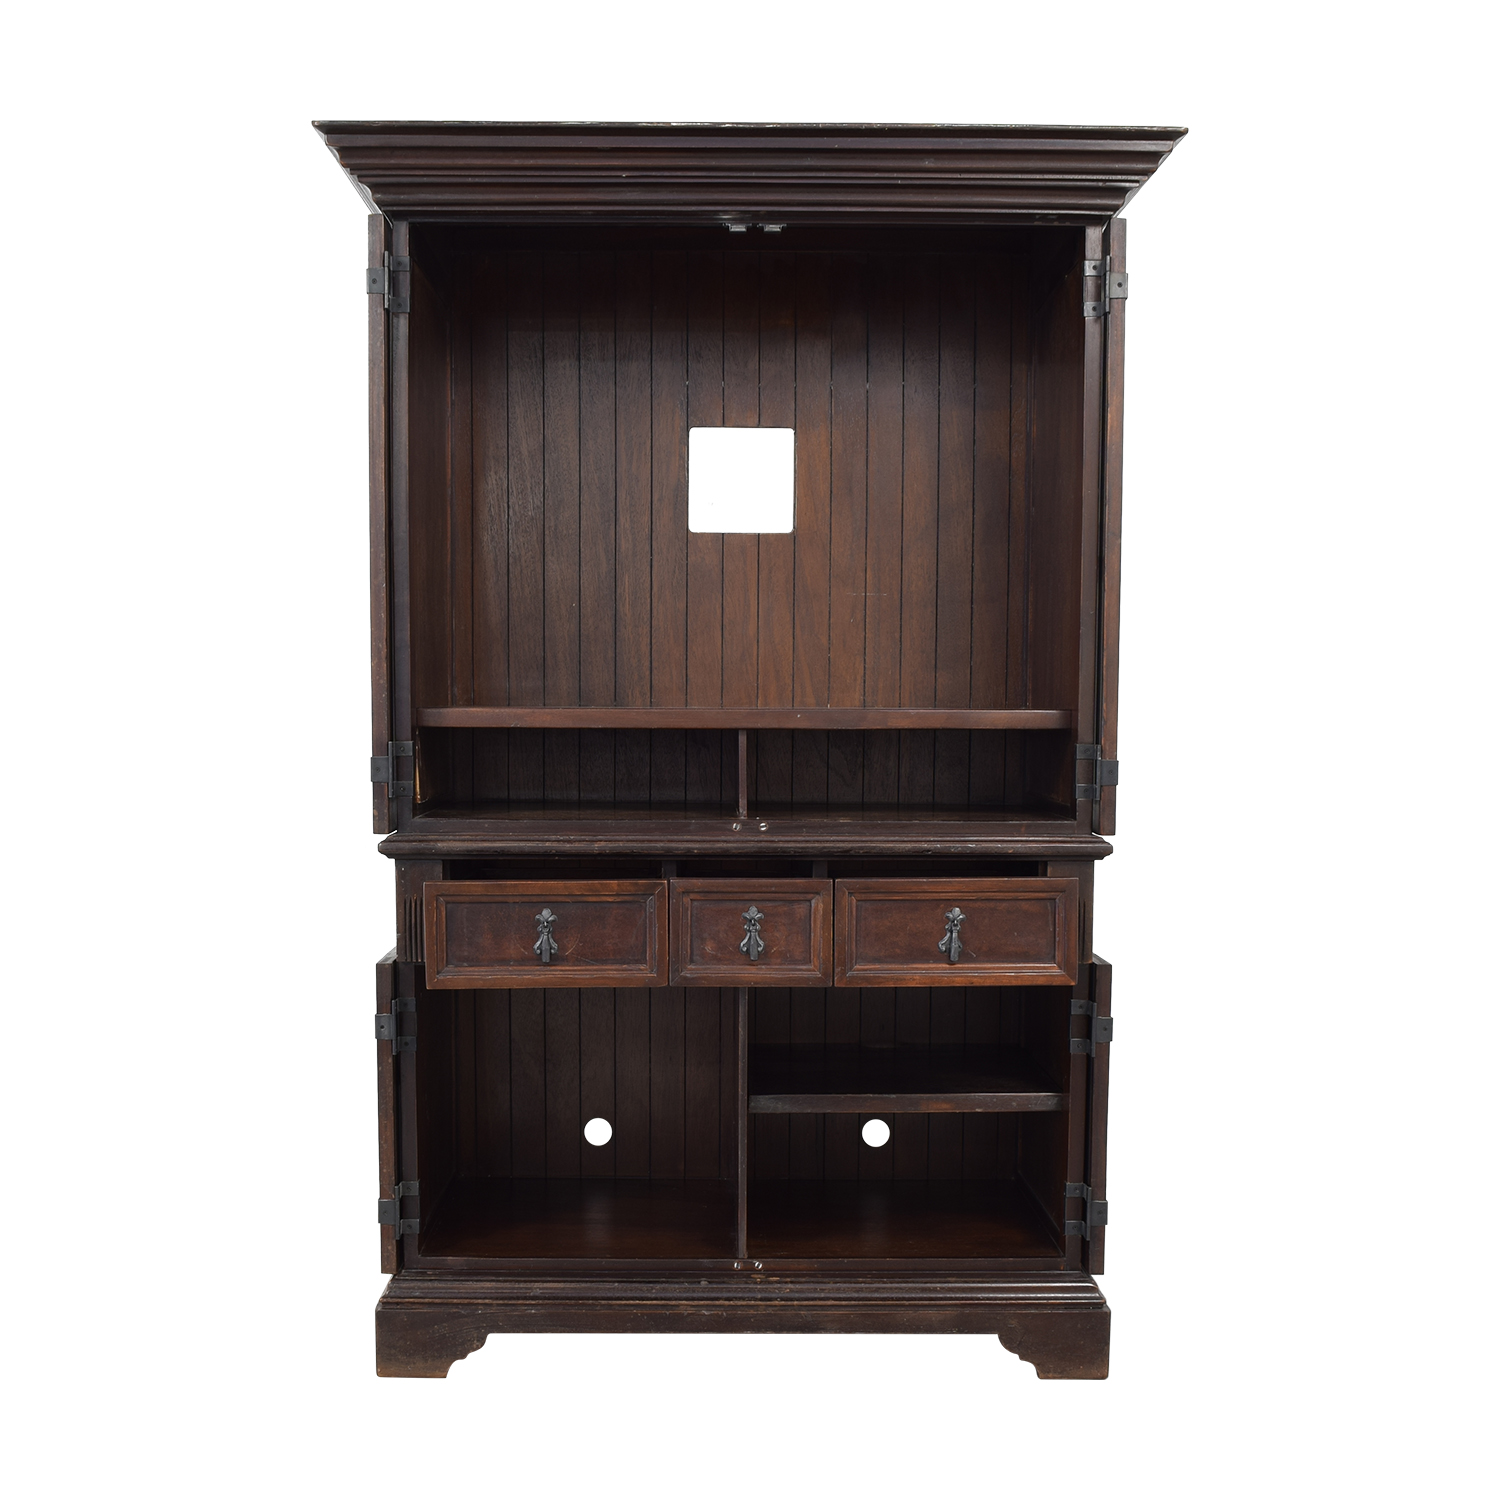 South Cone Furniture South Cone Furniture Large Armoire second hand